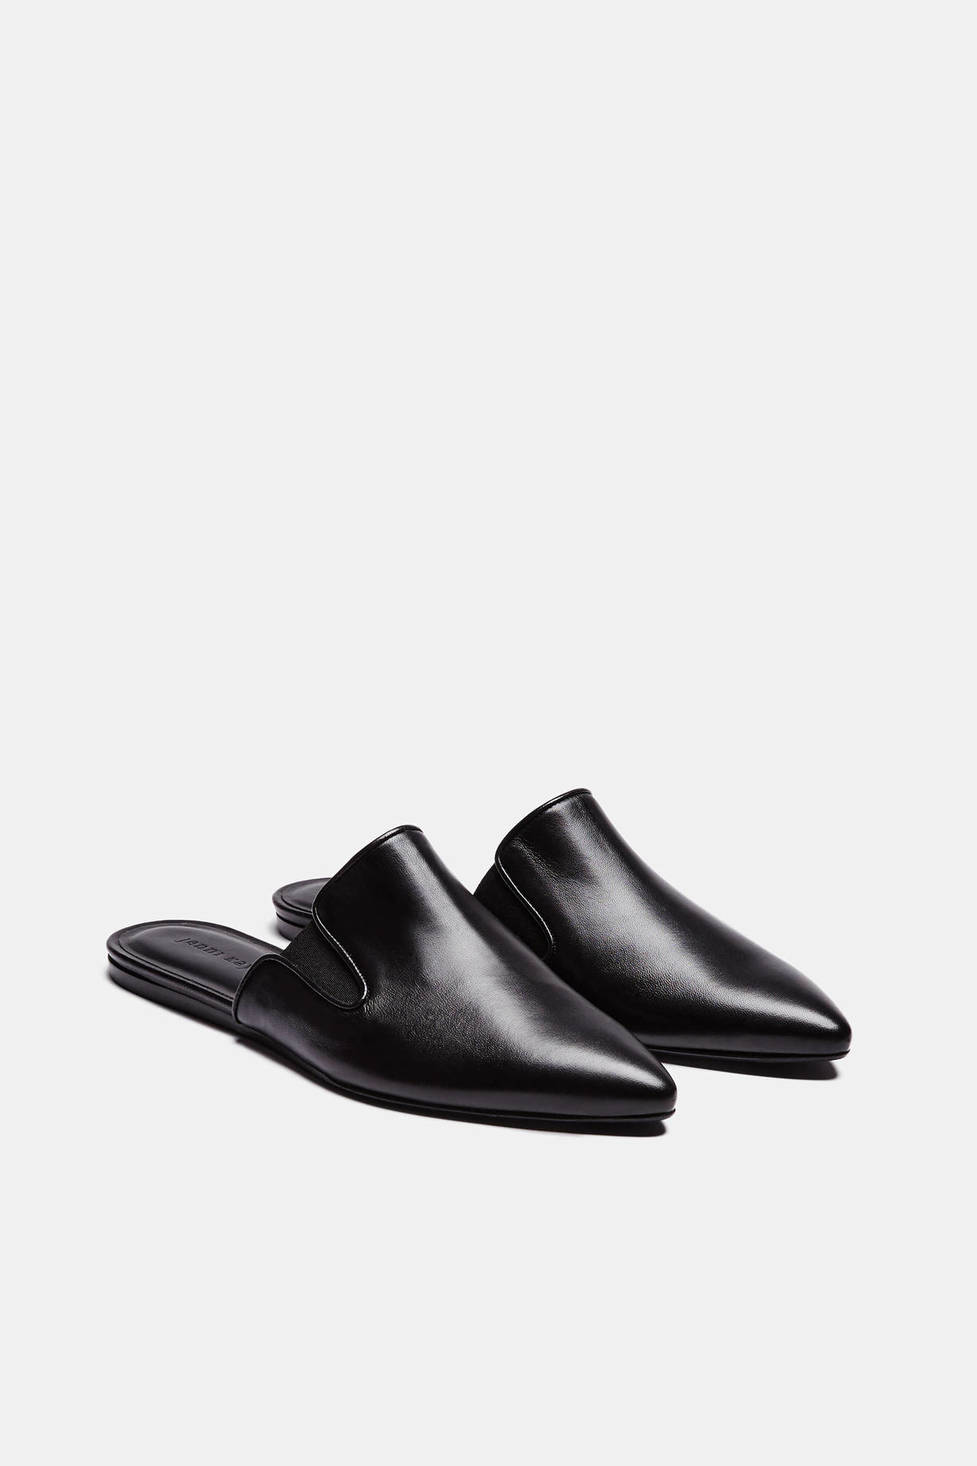 Jenni Kayne Mule - Black Leather $395